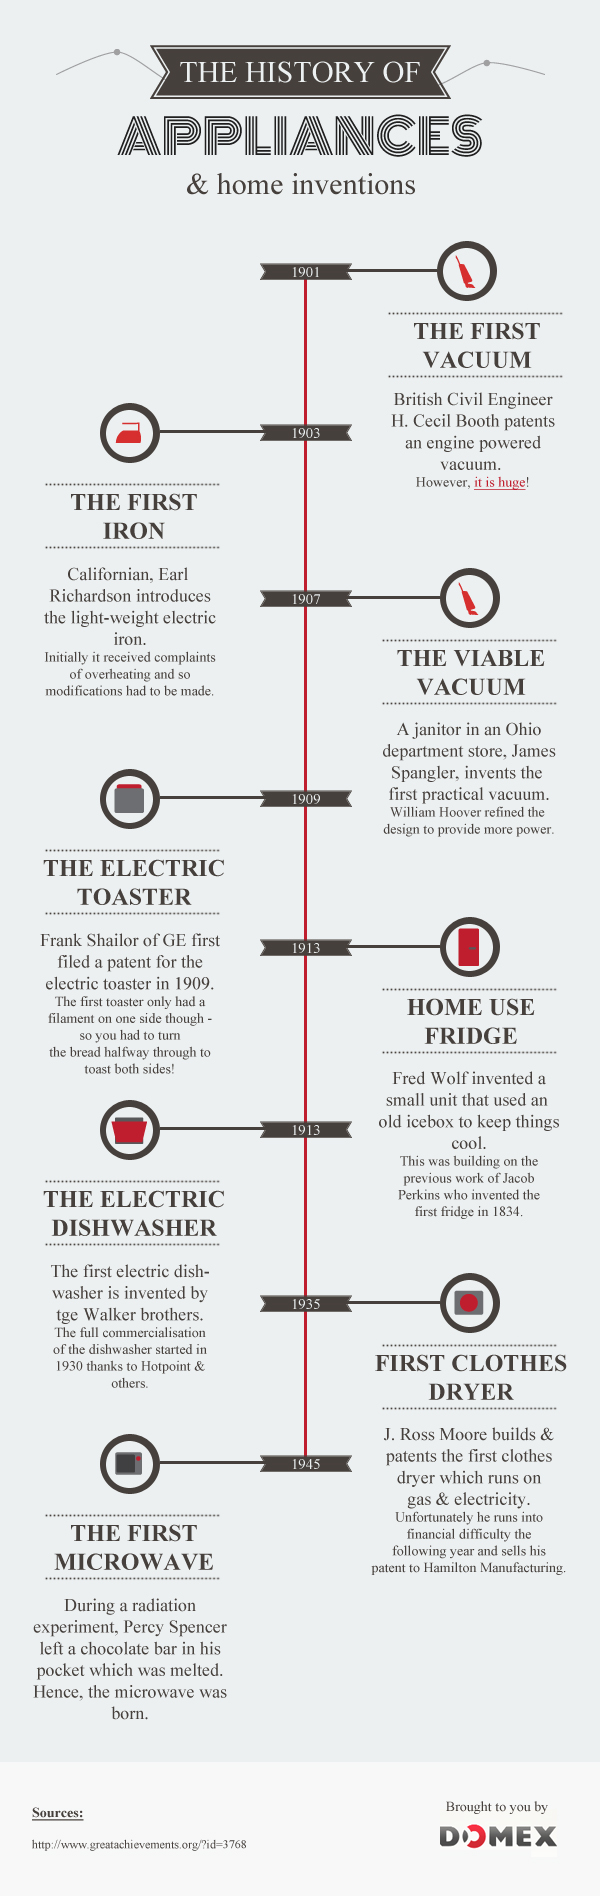 The History of Appliances